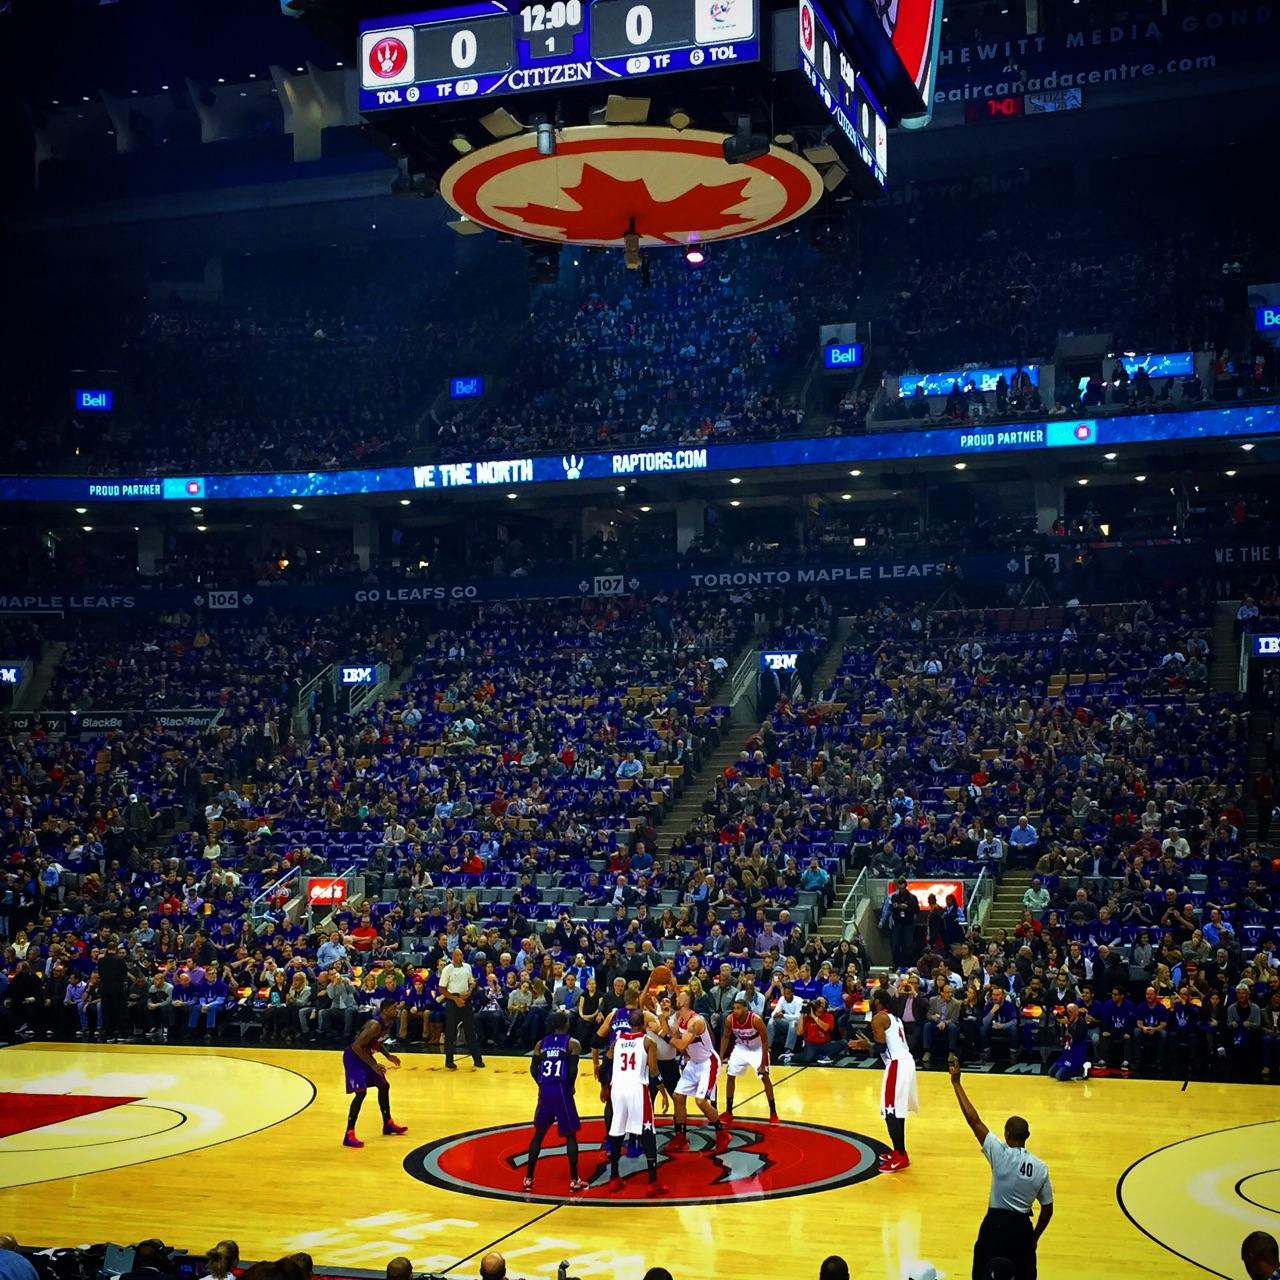 Toronto Raptors Seat View for Air Canada Centre Section 118, Row 11, Seat 24